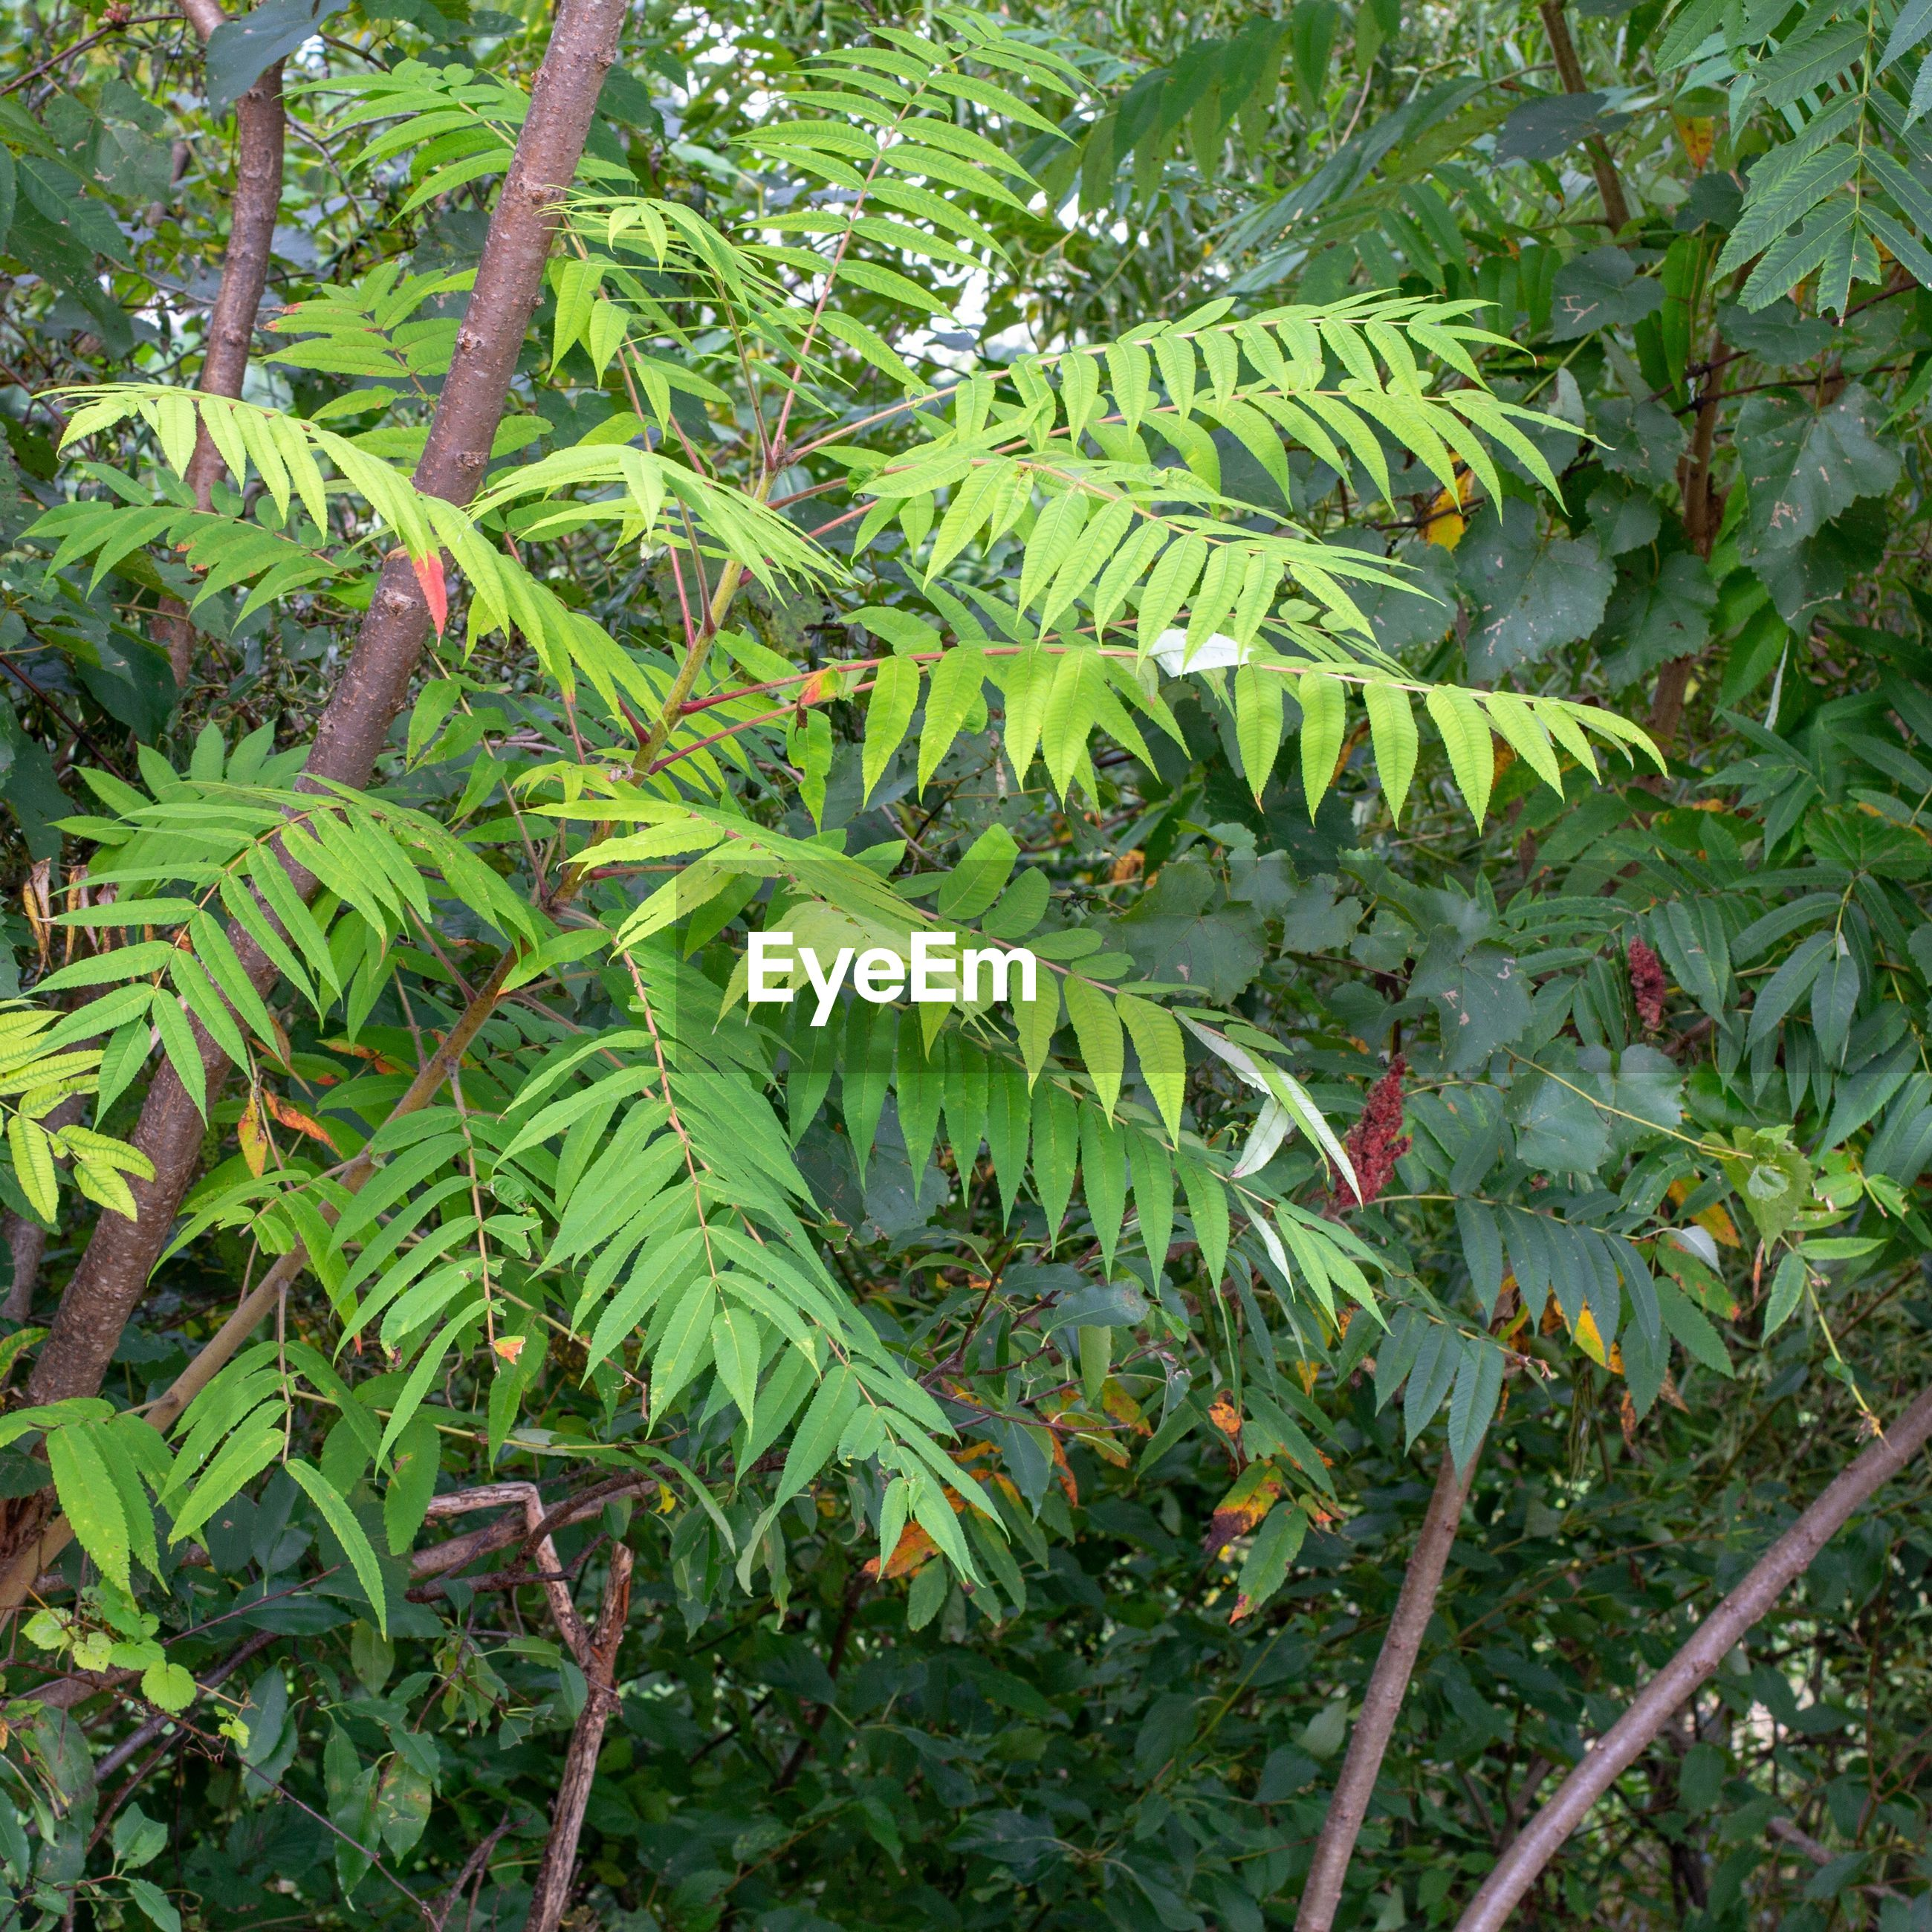 plant, growth, green color, leaf, plant part, tree, beauty in nature, nature, day, no people, tranquility, outdoors, close-up, branch, fern, forest, freshness, land, foliage, botany